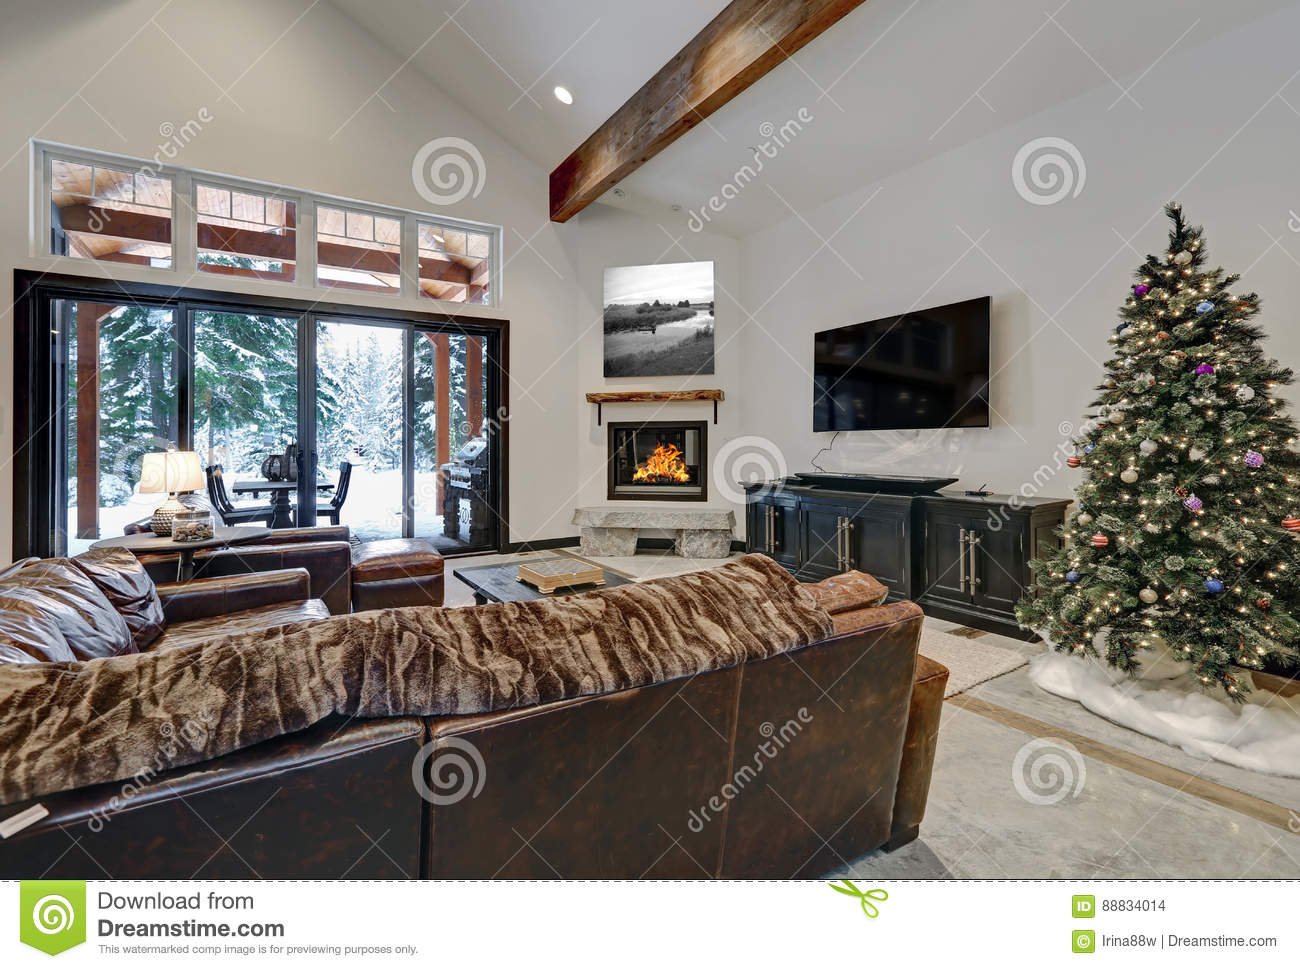 Vaulted Ceiling Living Room With Glass Sliding Doors To A Patio